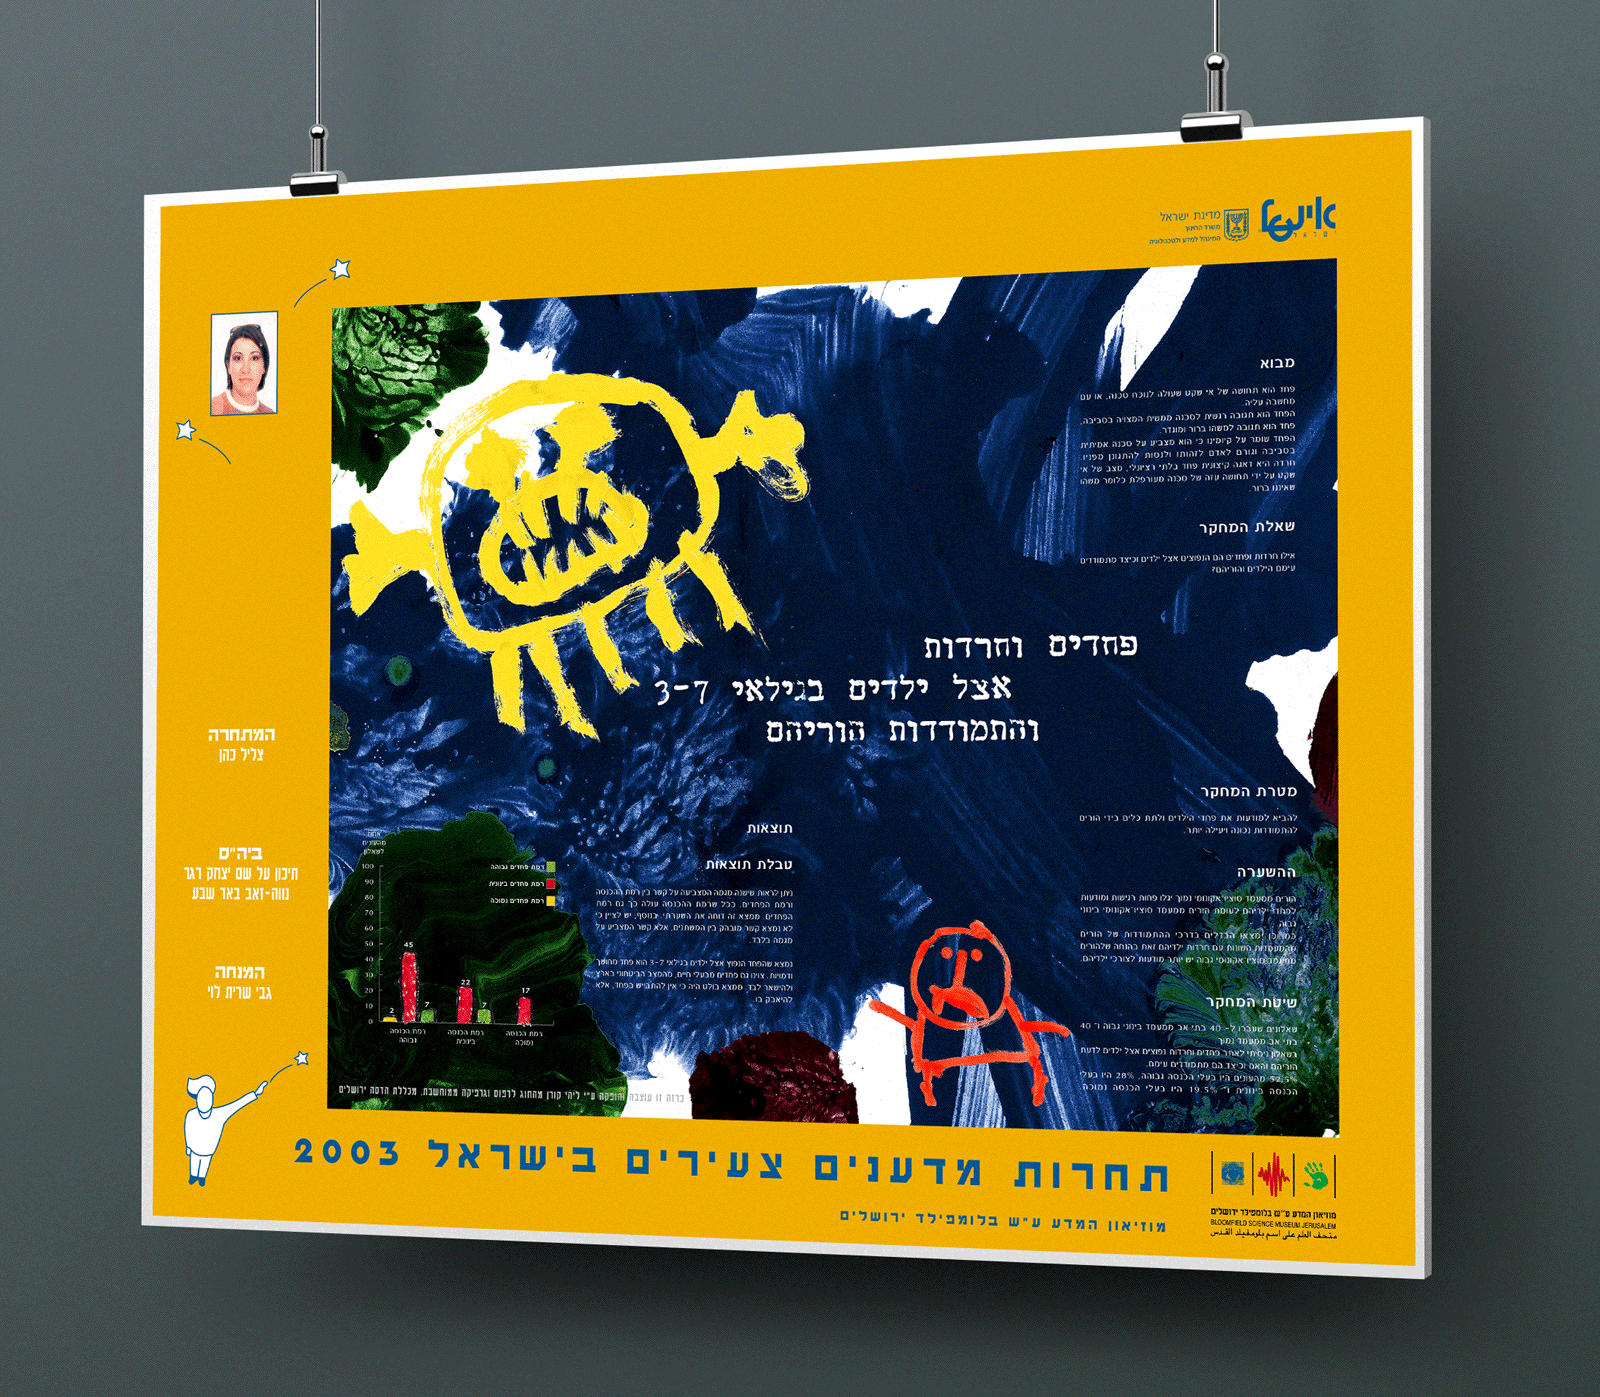 http://bigeyes.co.il/wp-content/uploads/2019/07/young-scientists-poster-1.png